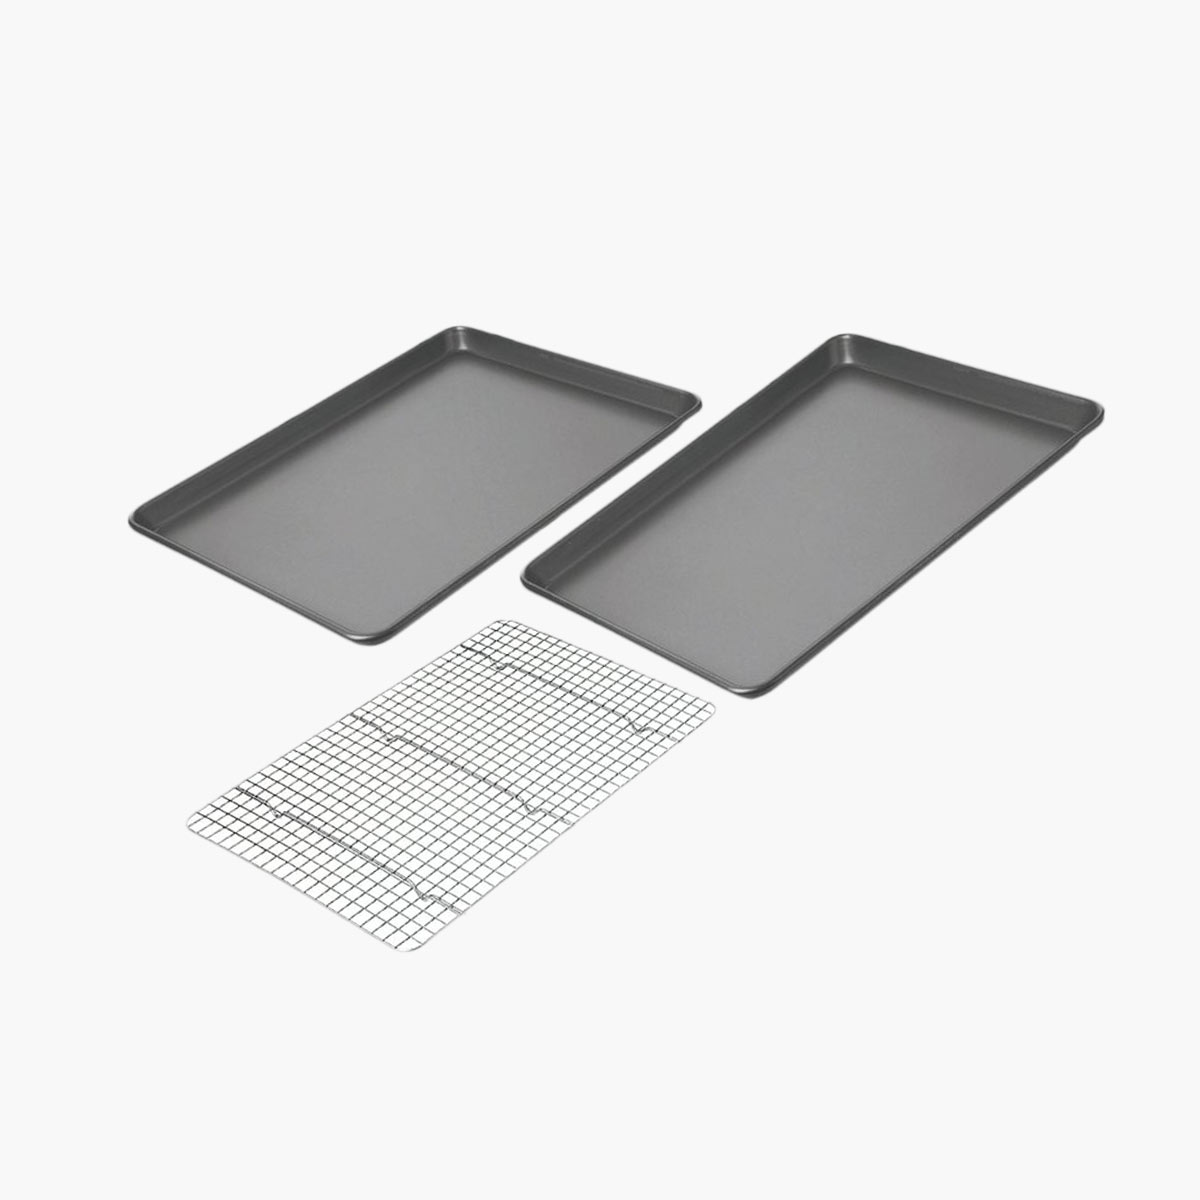 A set of two baking sheets and a wire mesh rack.